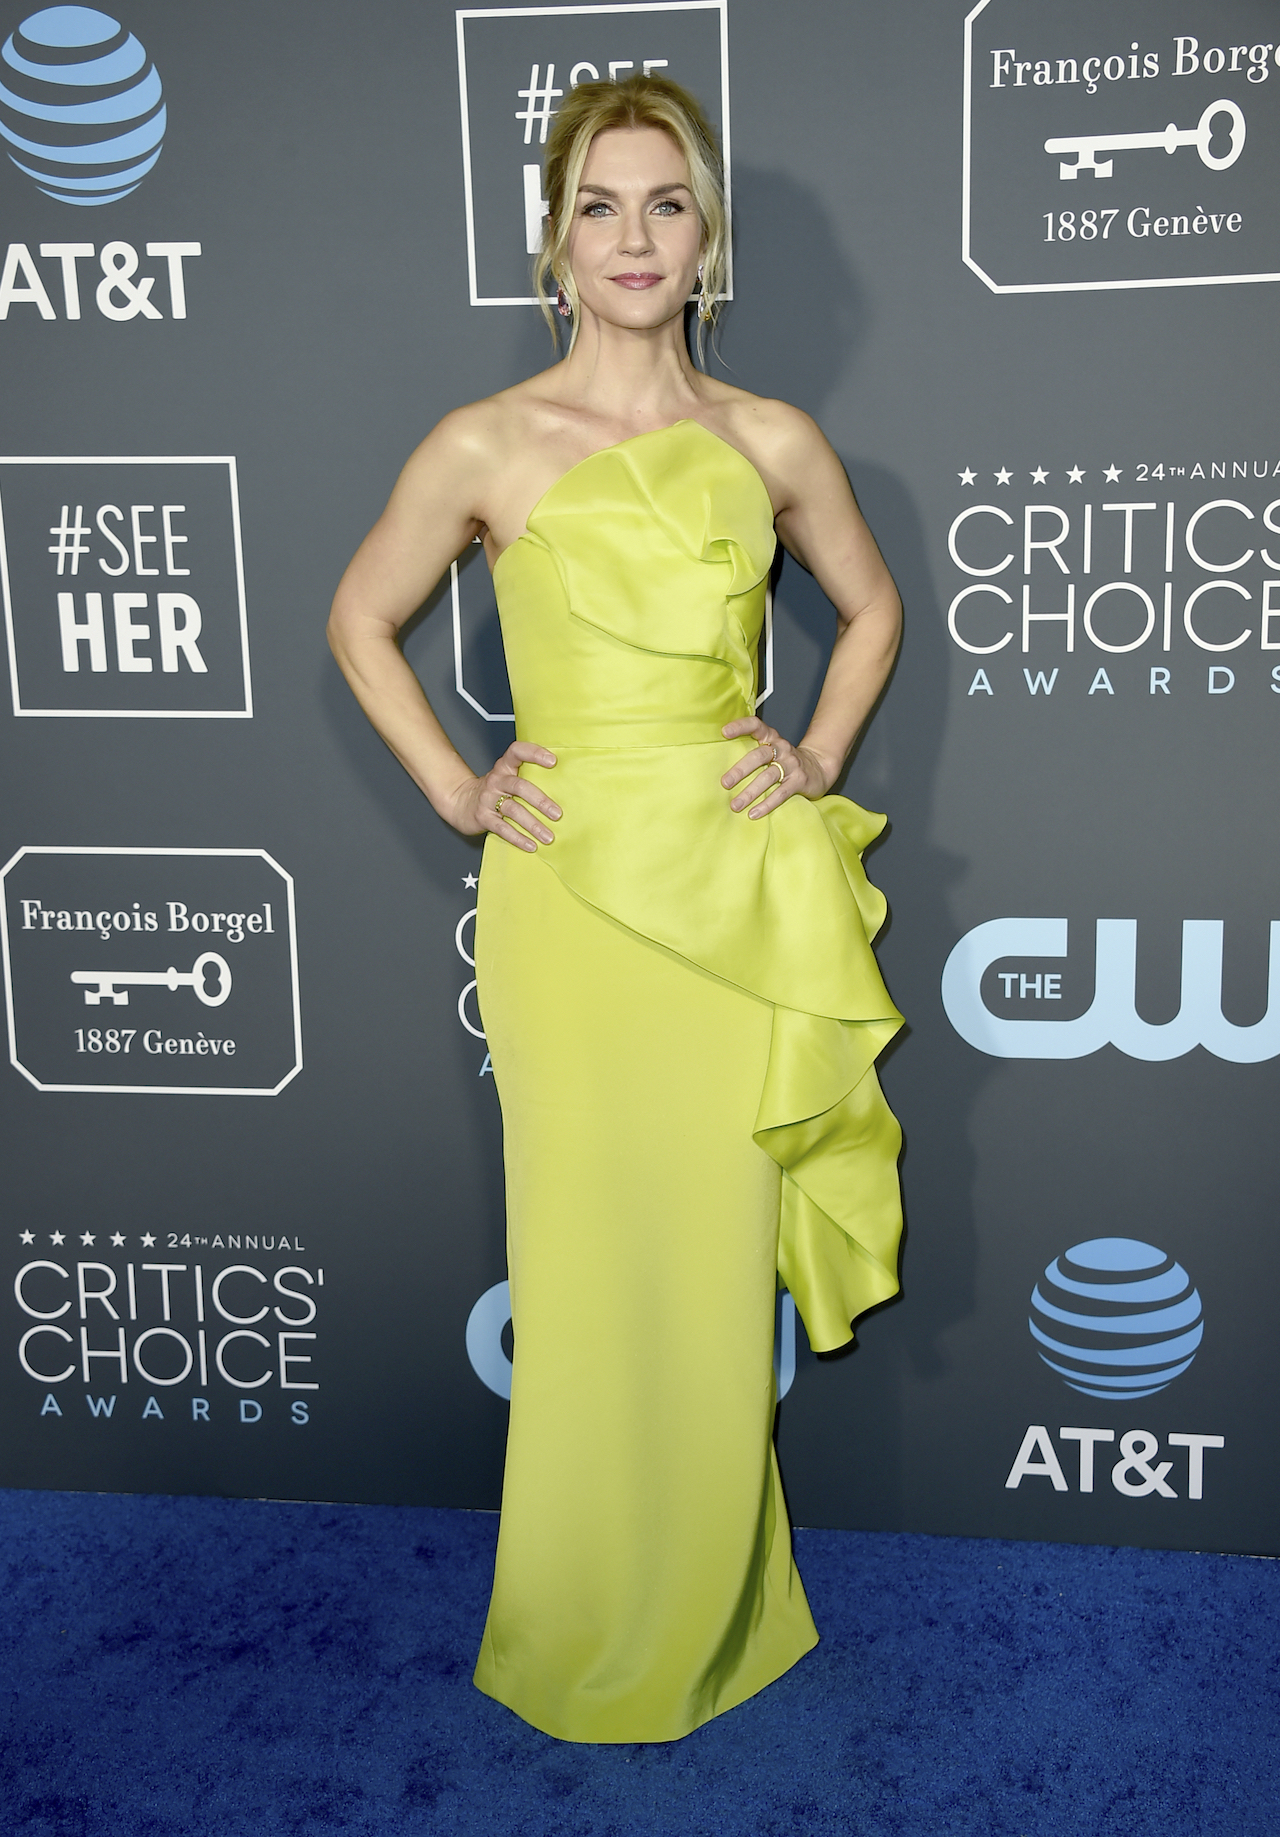 "<div class=""meta image-caption""><div class=""origin-logo origin-image ap""><span>AP</span></div><span class=""caption-text"">Rhea Seehorn arrives at the 24th annual Critics' Choice Awards on Sunday, Jan. 13, 2019, at the Barker Hangar in Santa Monica, Calif. (Jordan Strauss/Invision/AP)</span></div>"